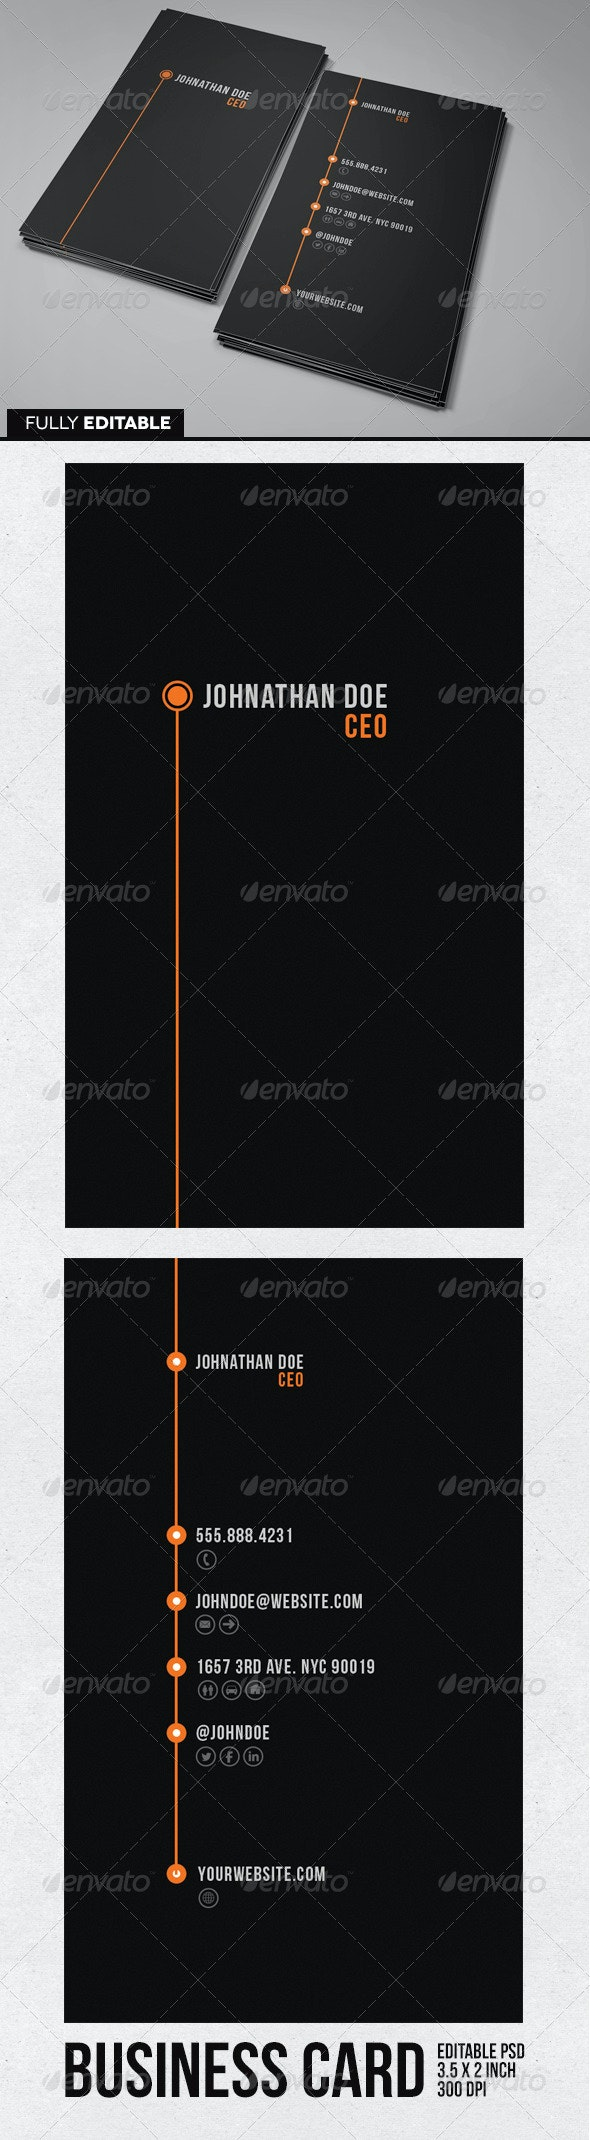 Orange Line Business Card - Business Cards Print Templates